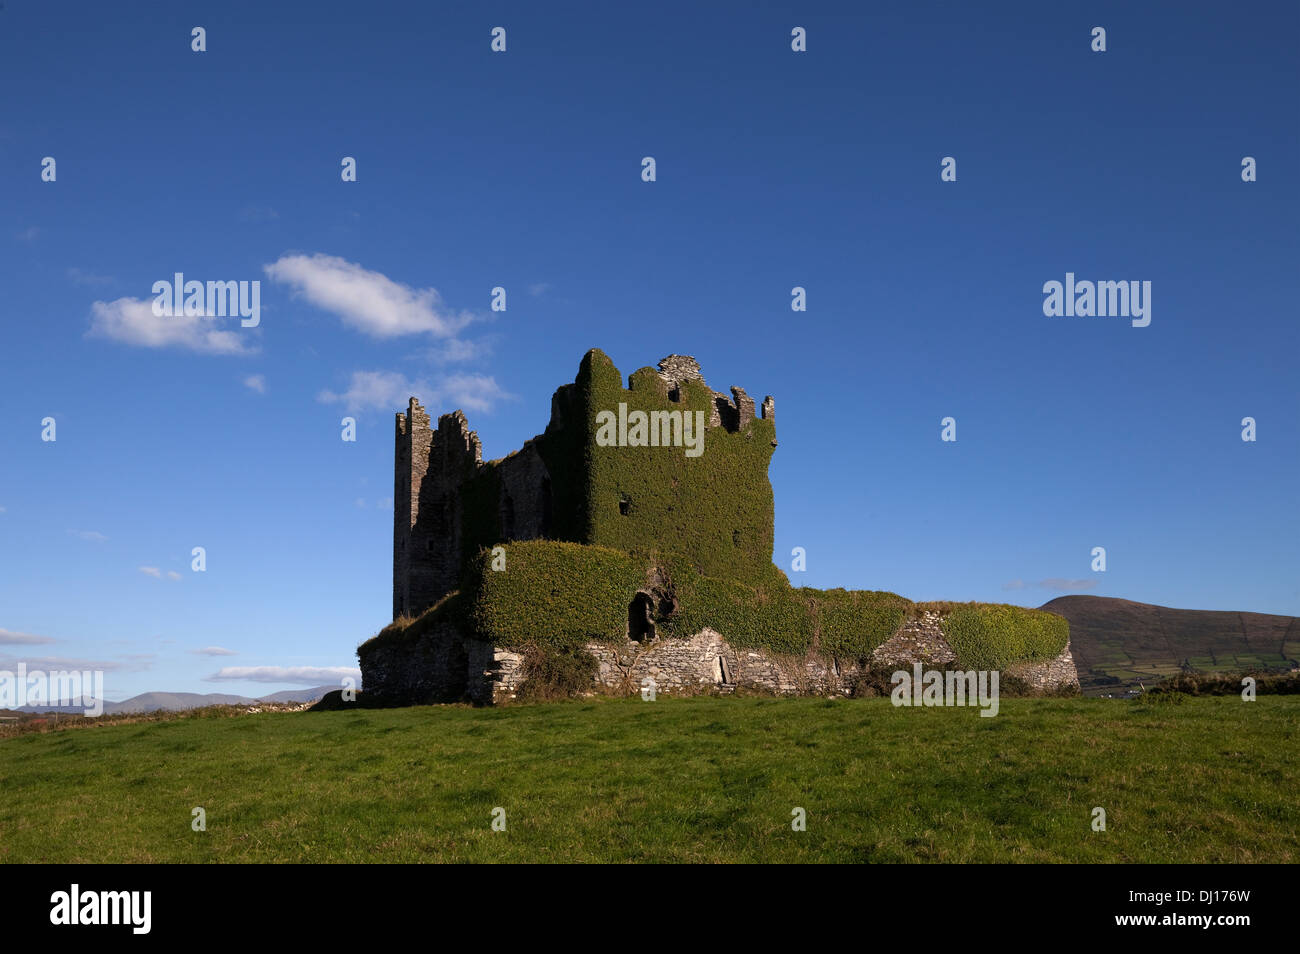 Ballycarberry Castle, built circa 16th Century, Near Caherciveen, Ring of Kerry, County Kerry, Ireland - Stock Image